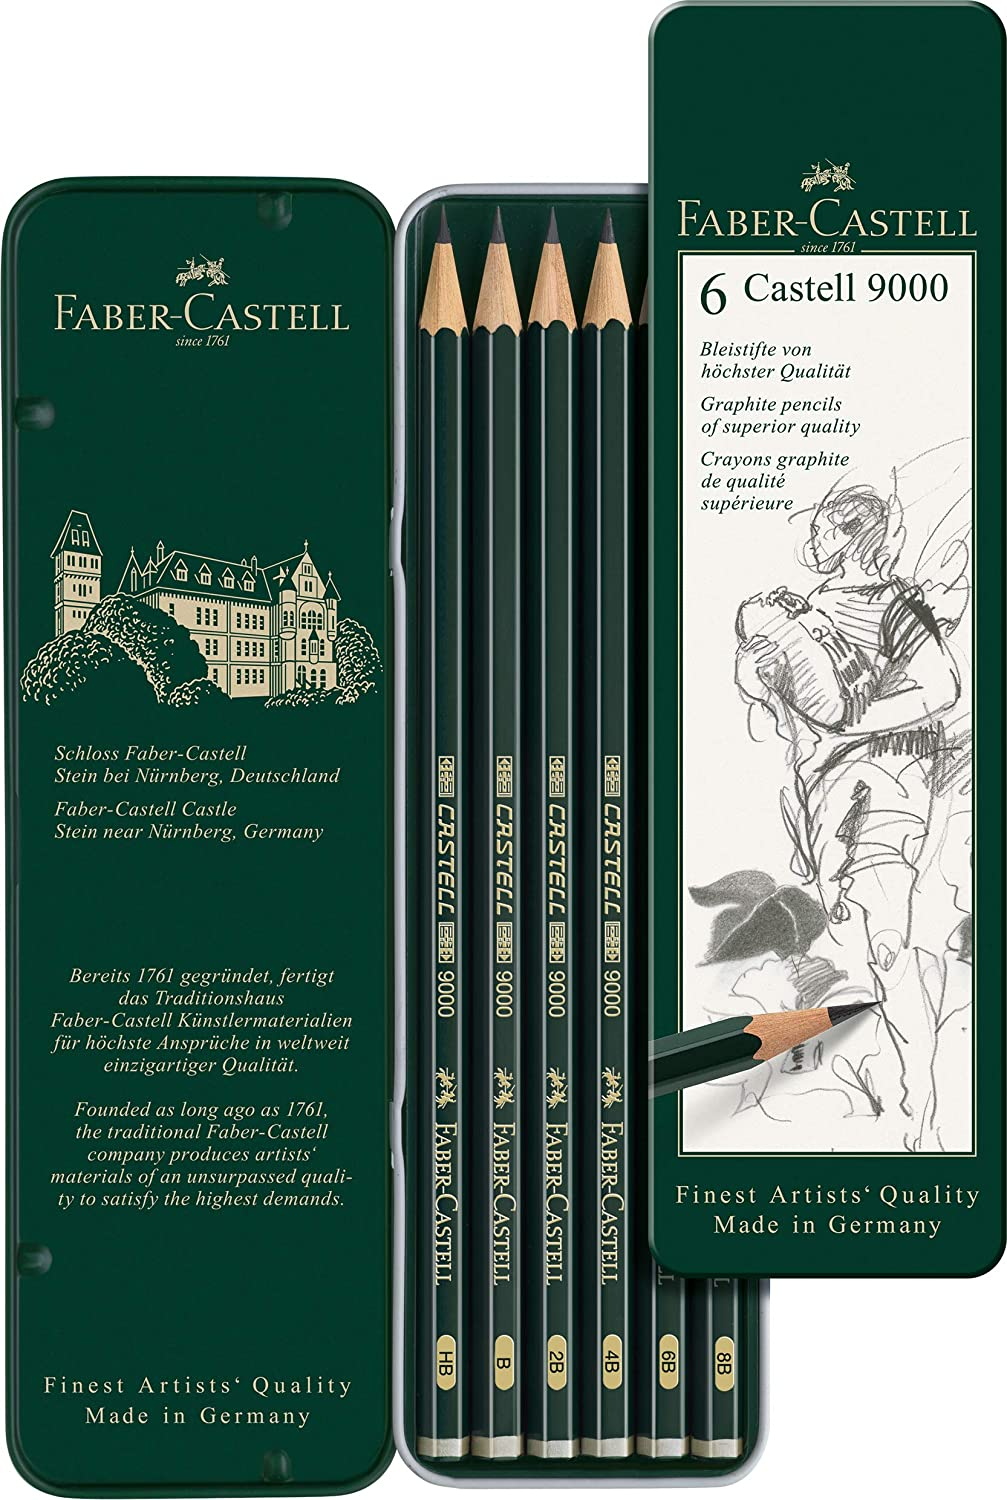 Faber-Castell Castell 9000 Pencil Set - Pack of 6